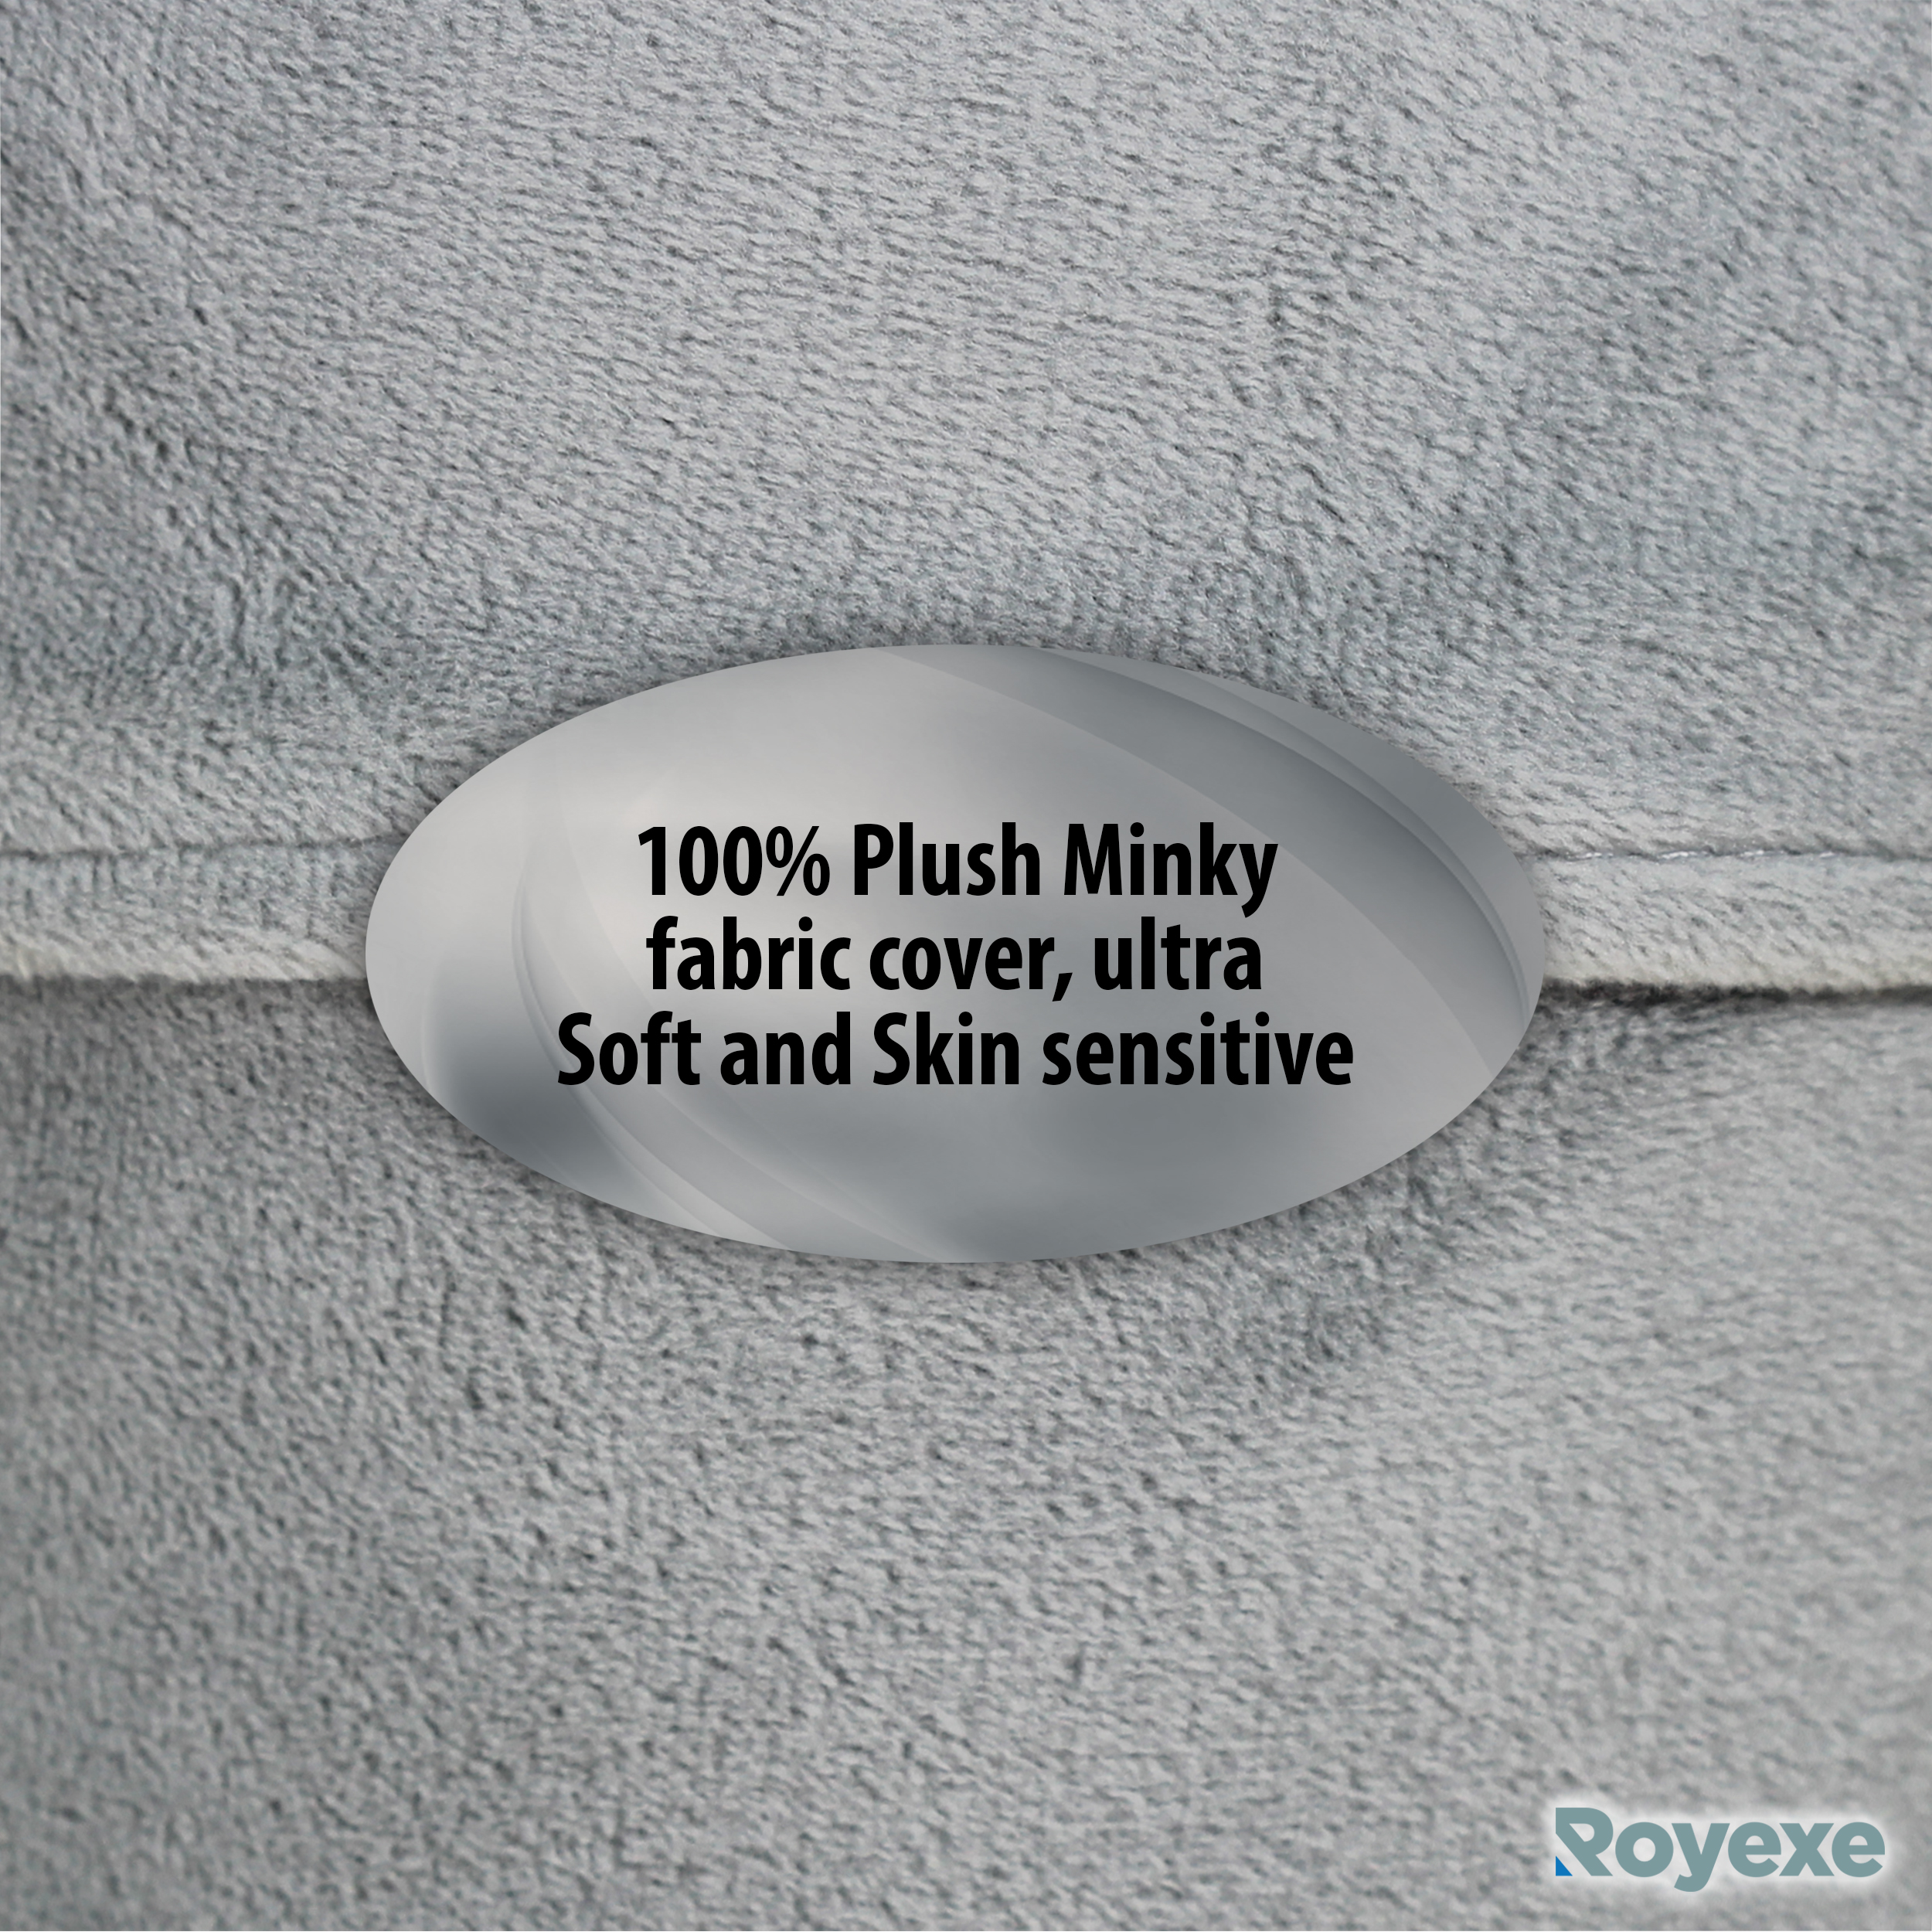 Nursing pillow cover (5)